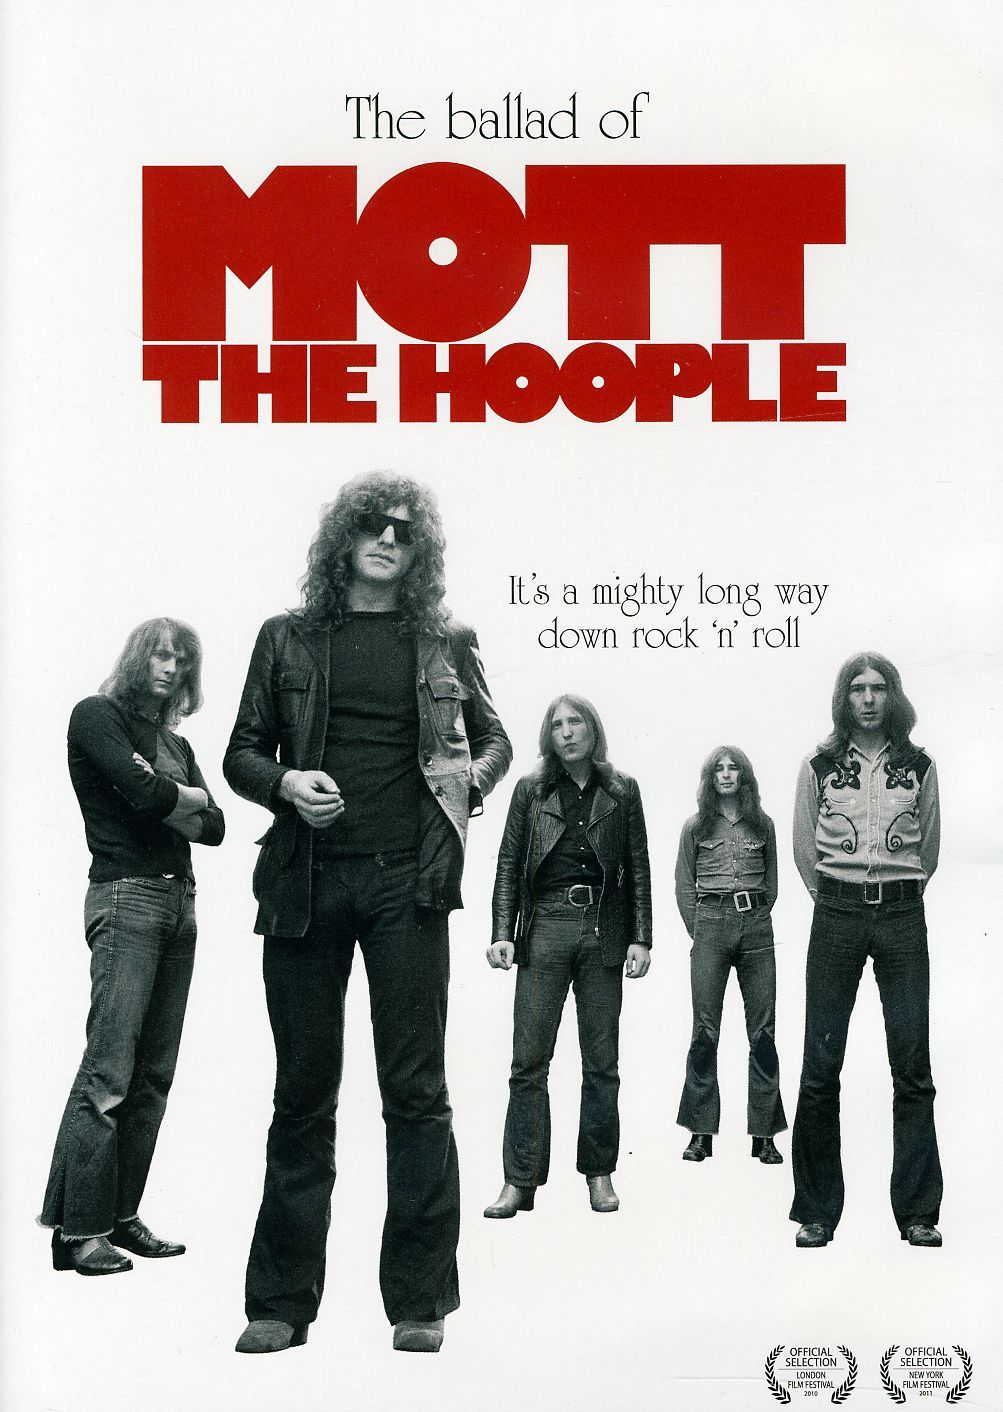 Mott The Hoople Were A British Rock Band With Strong R Roots Popular In The Glam Rock Era Of The Early To Mid 197 Mott The Hoople All The Young Dudes Hoople